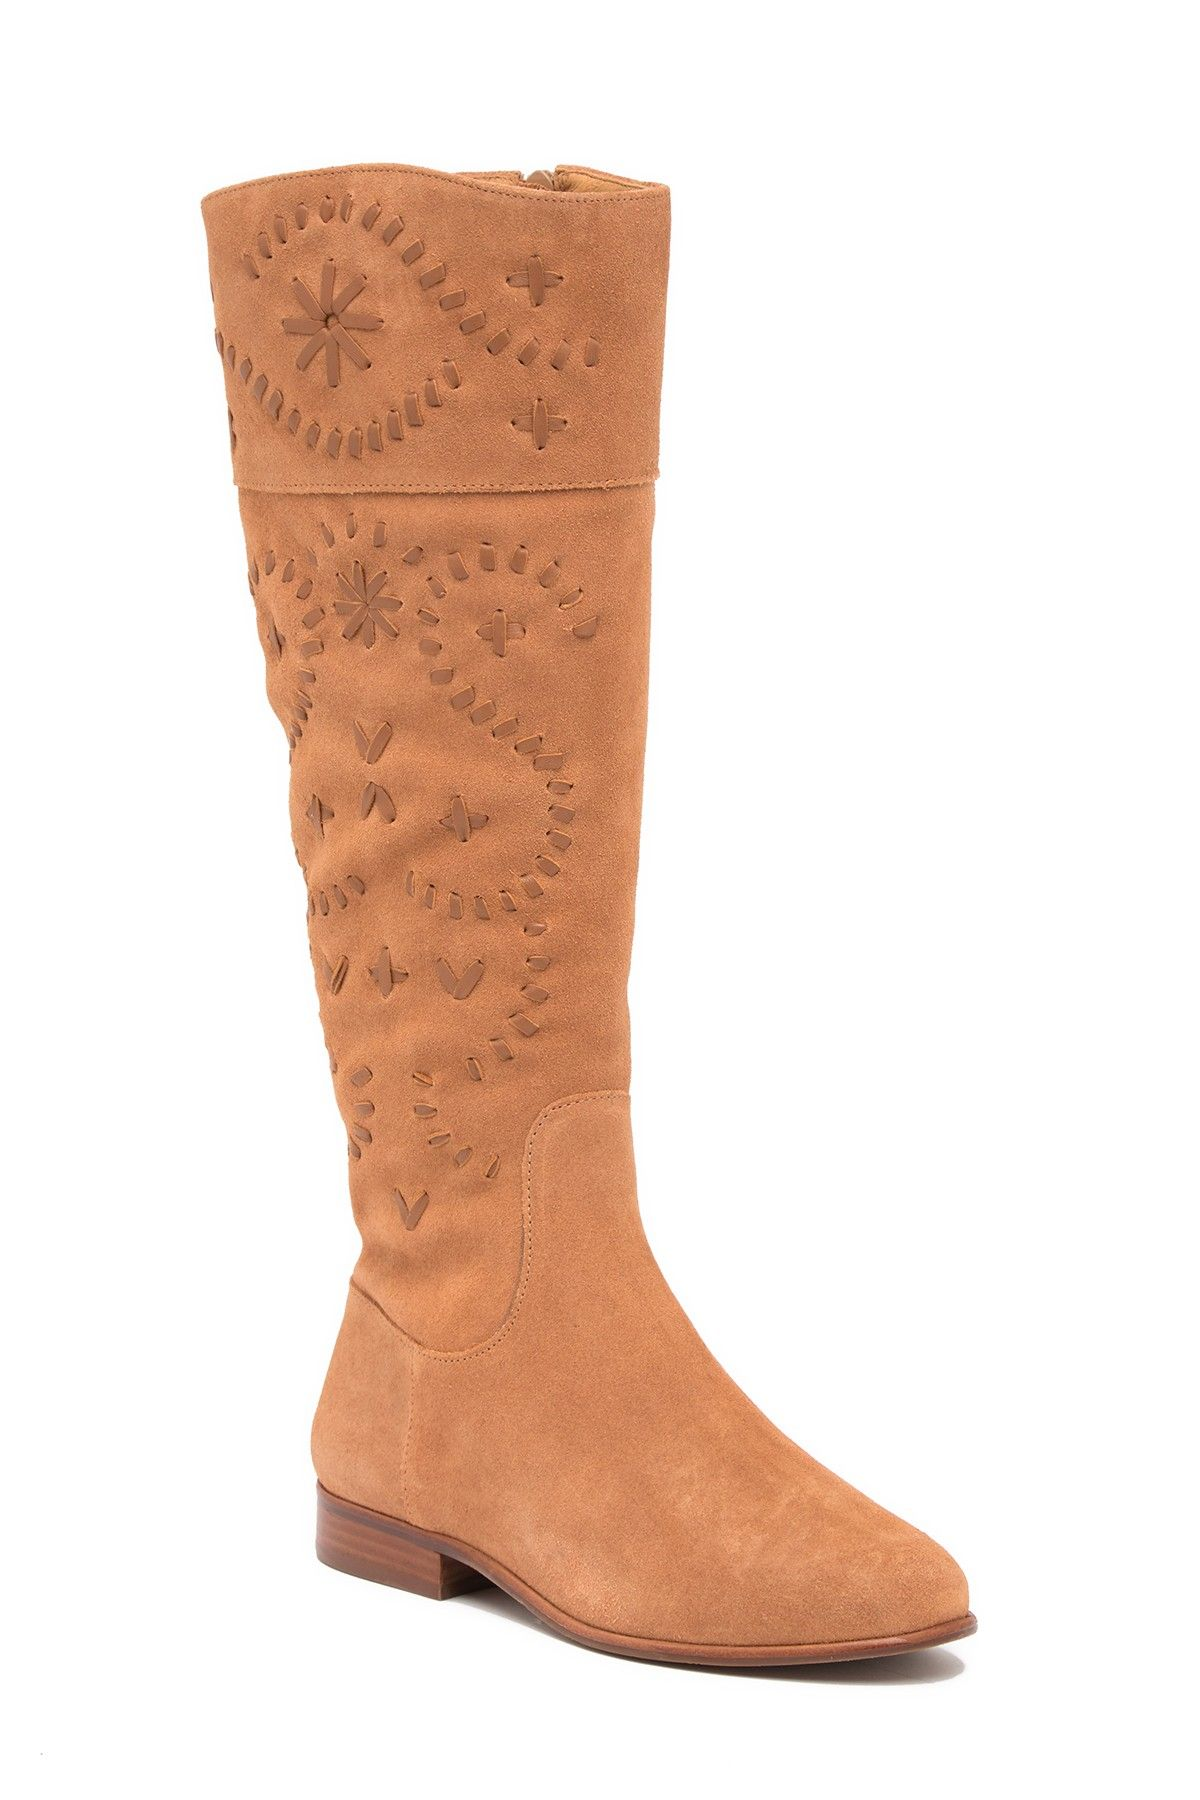 04c3afccfa71 Jack Rogers - Tara Tall Suede Boot is now 77% off. Free Shipping on orders  over  100.